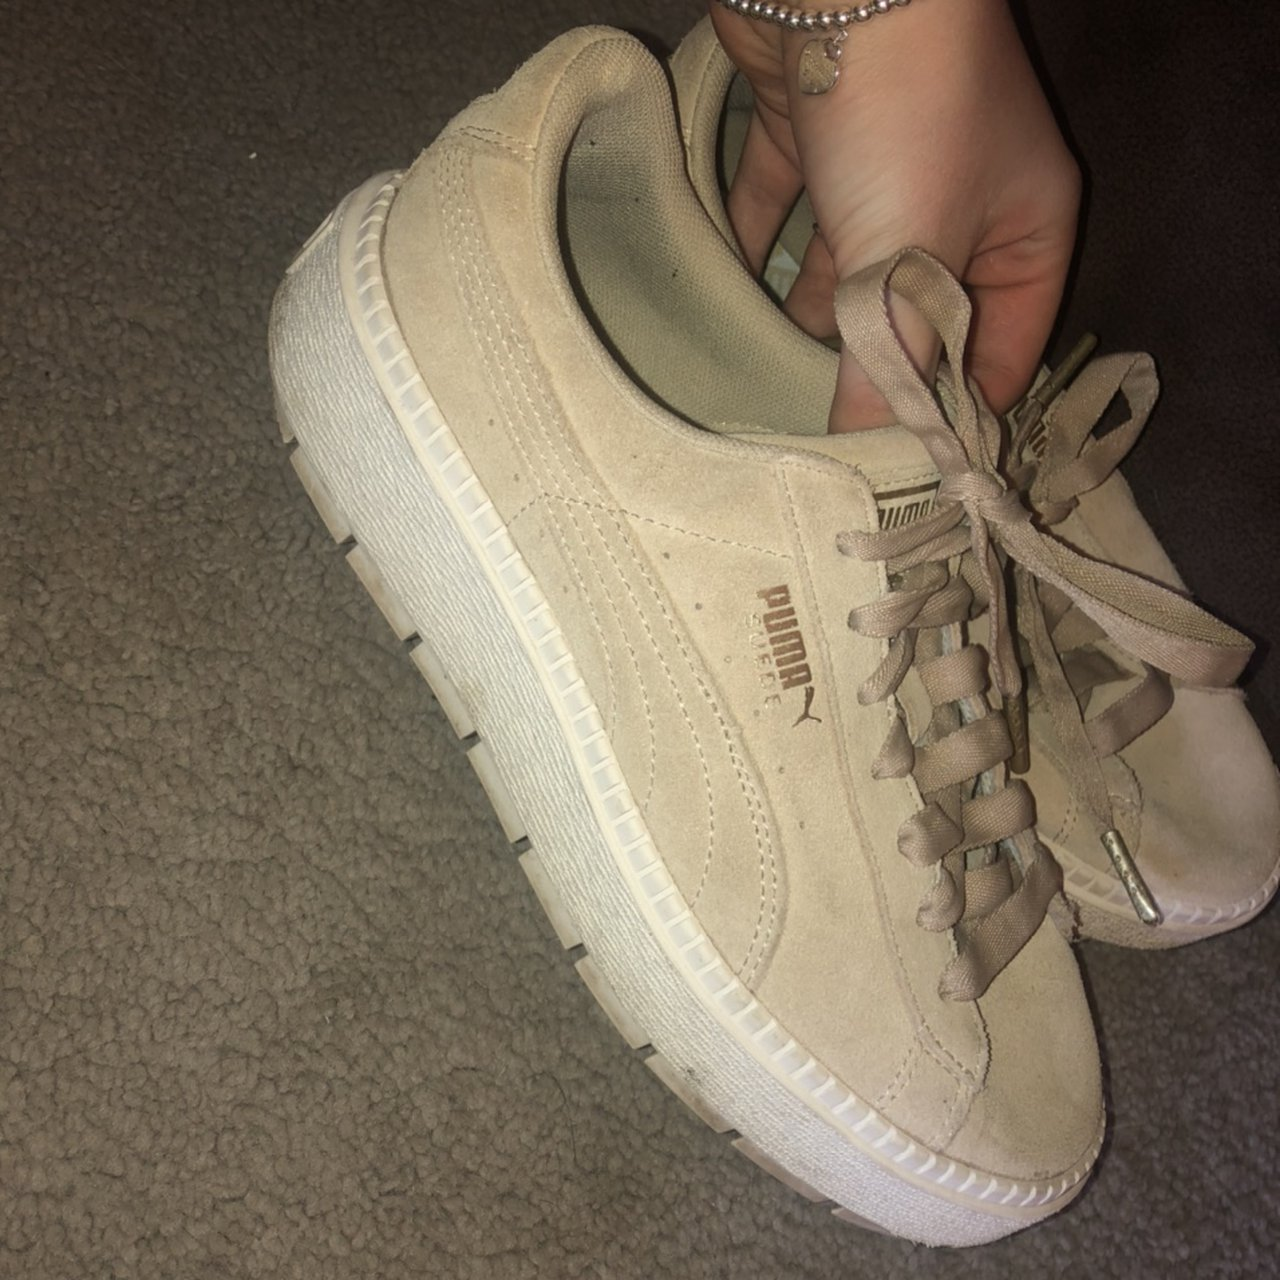 Nude suede puma trainers with ribbon